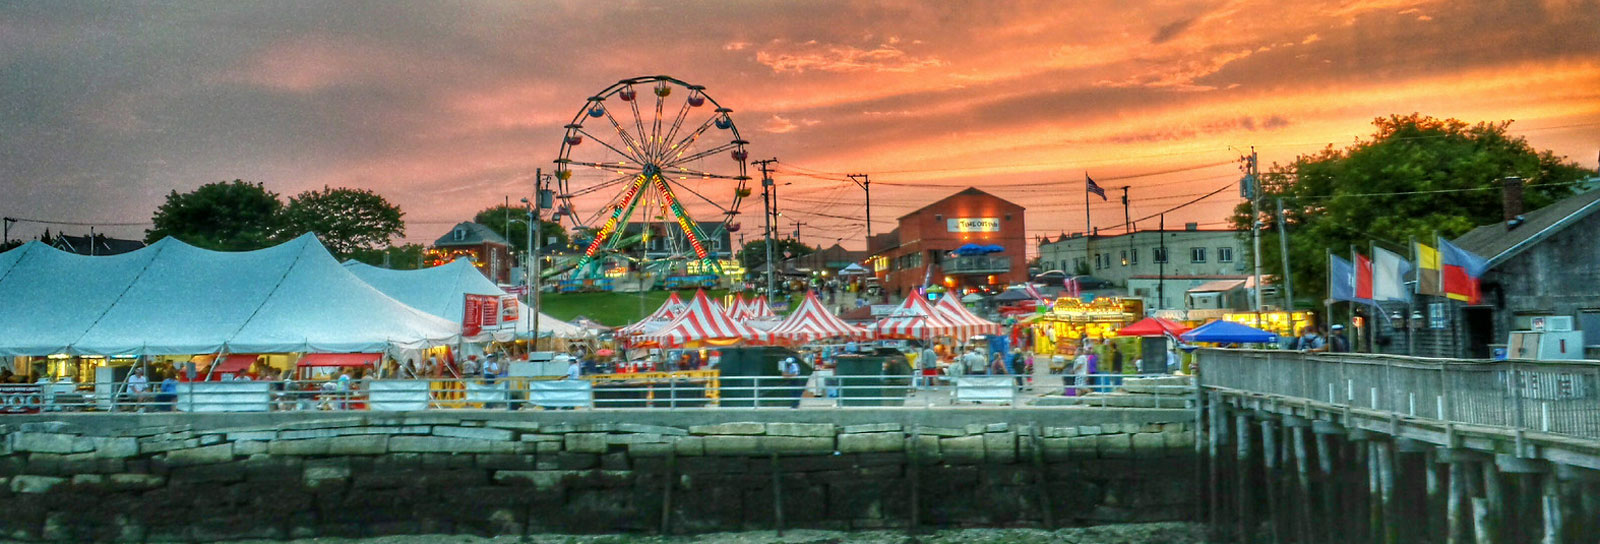 Maine Lobster Festival: 72nd Annual Celebration of All